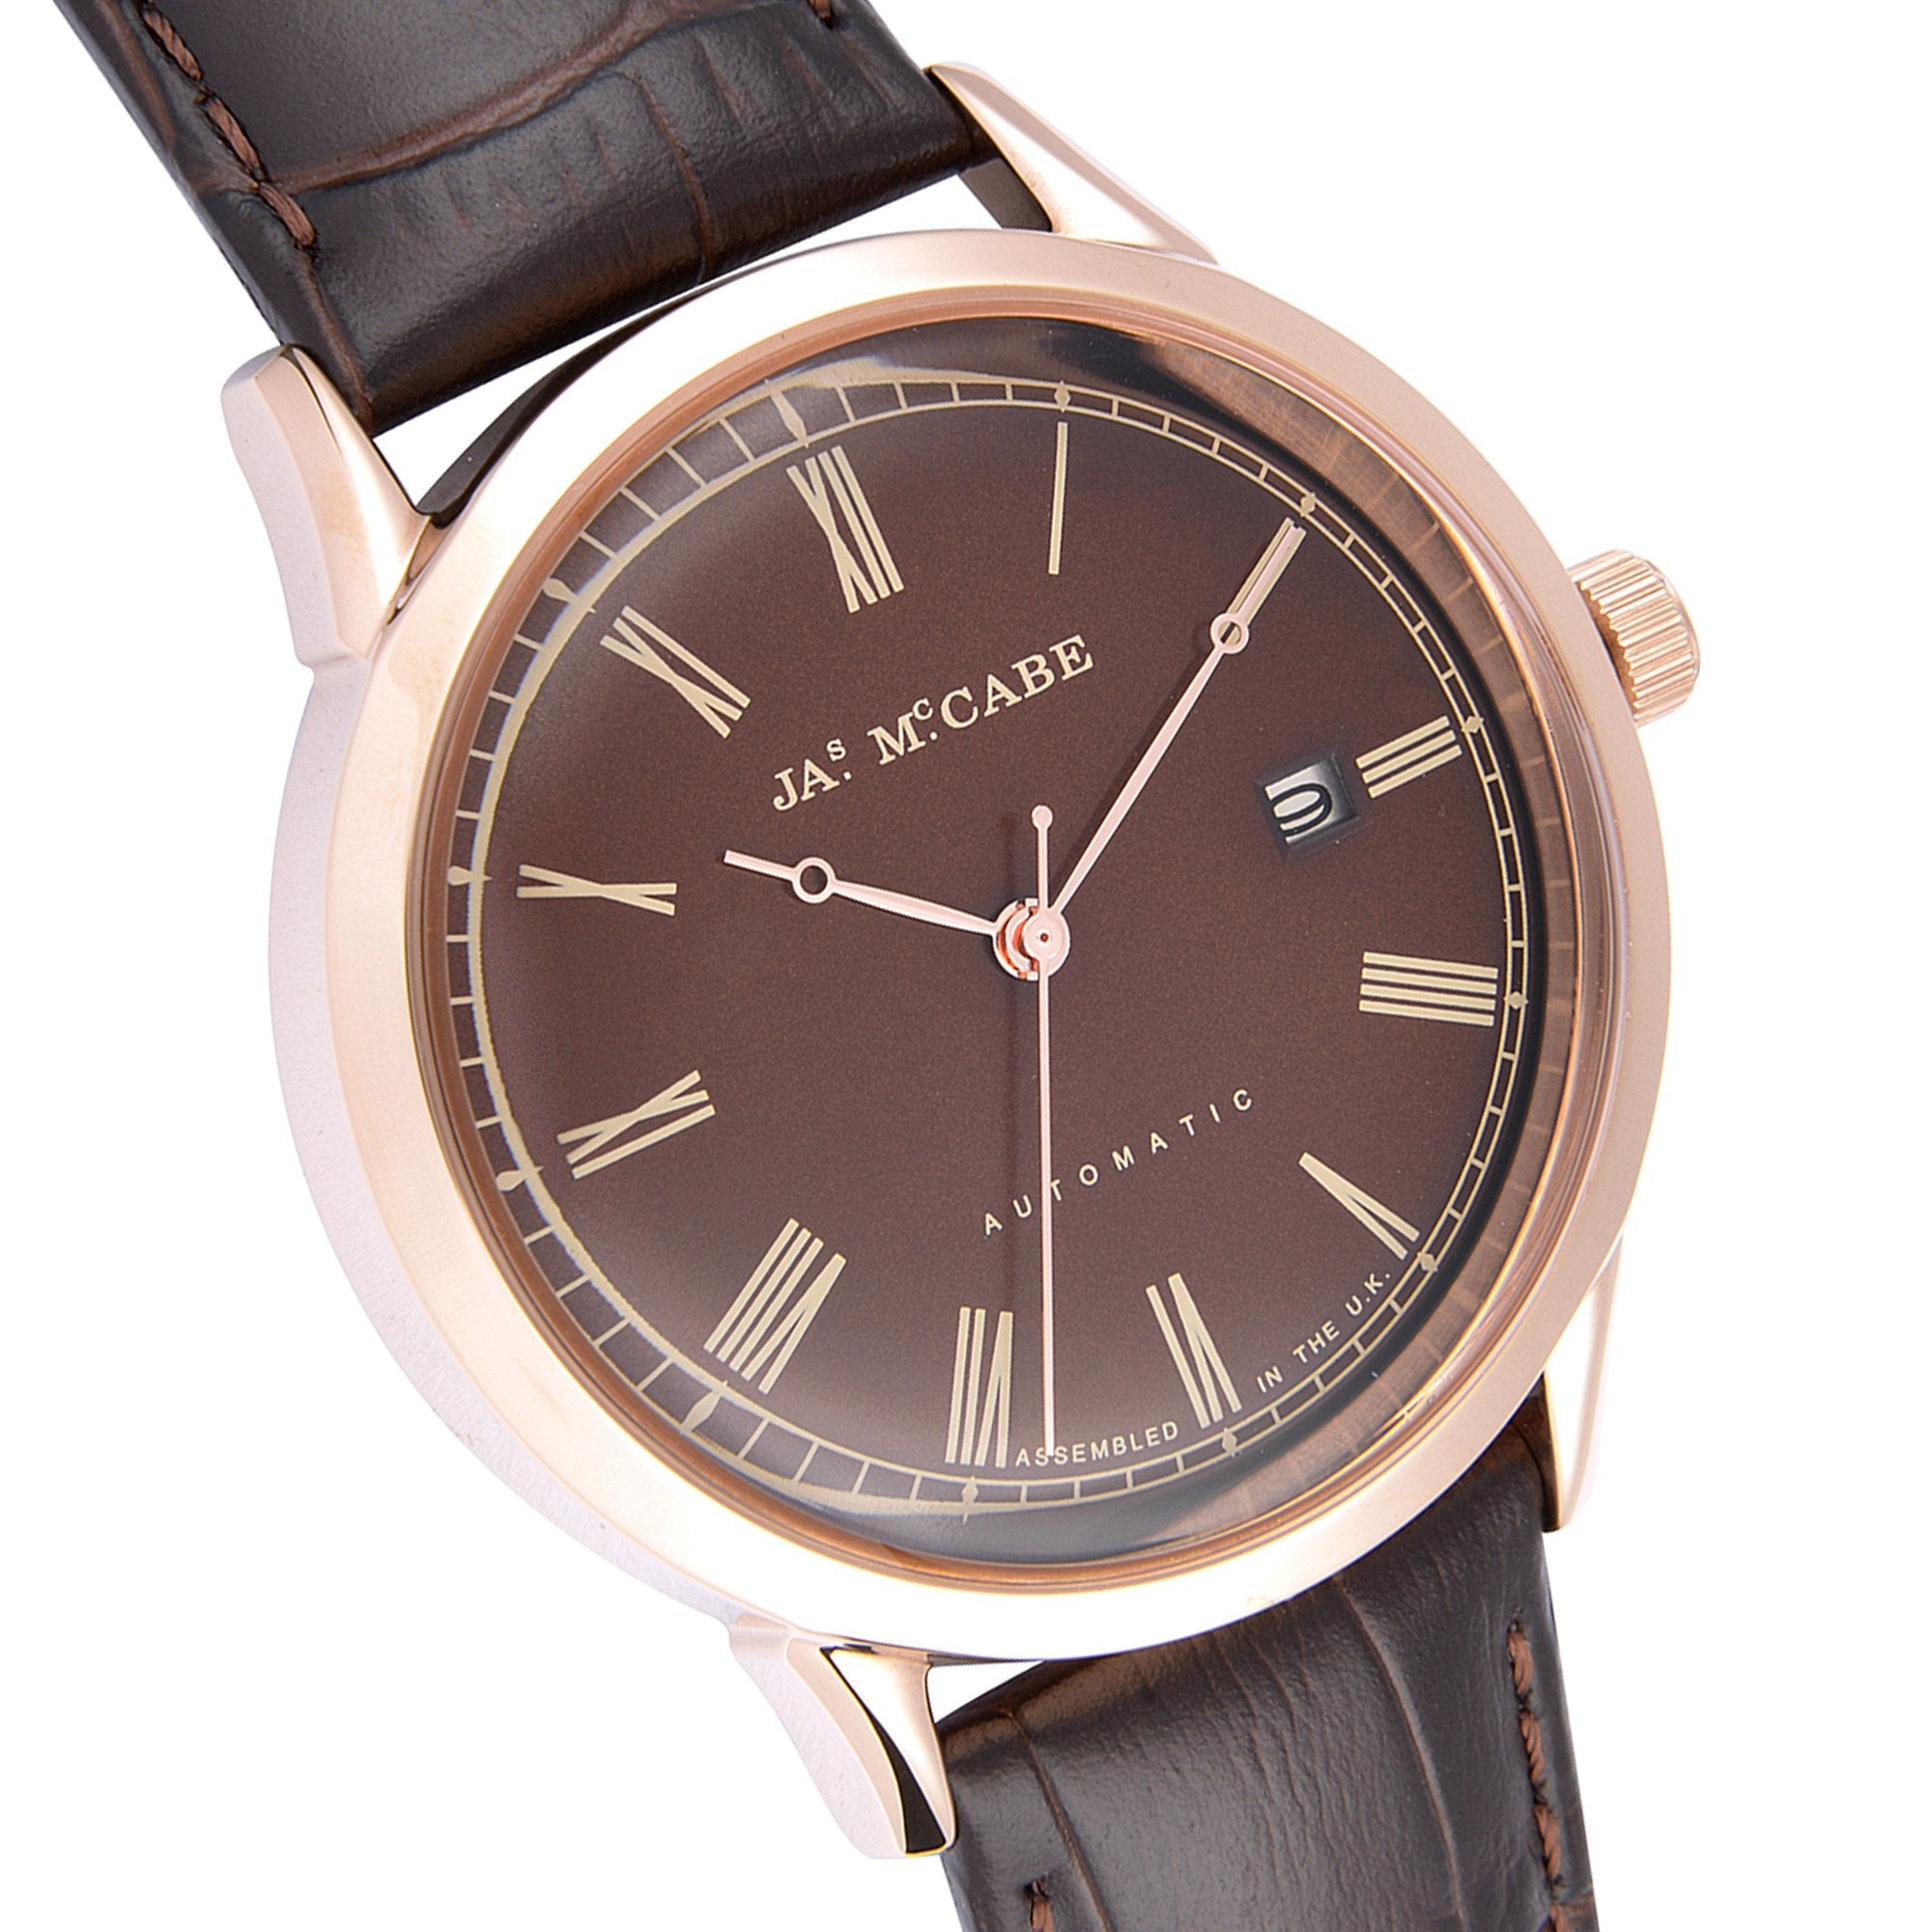 James Mccabe Men's JM-1021-04 Heritage Rose Gold Automatic Watch with Dark Brown Leather Strap